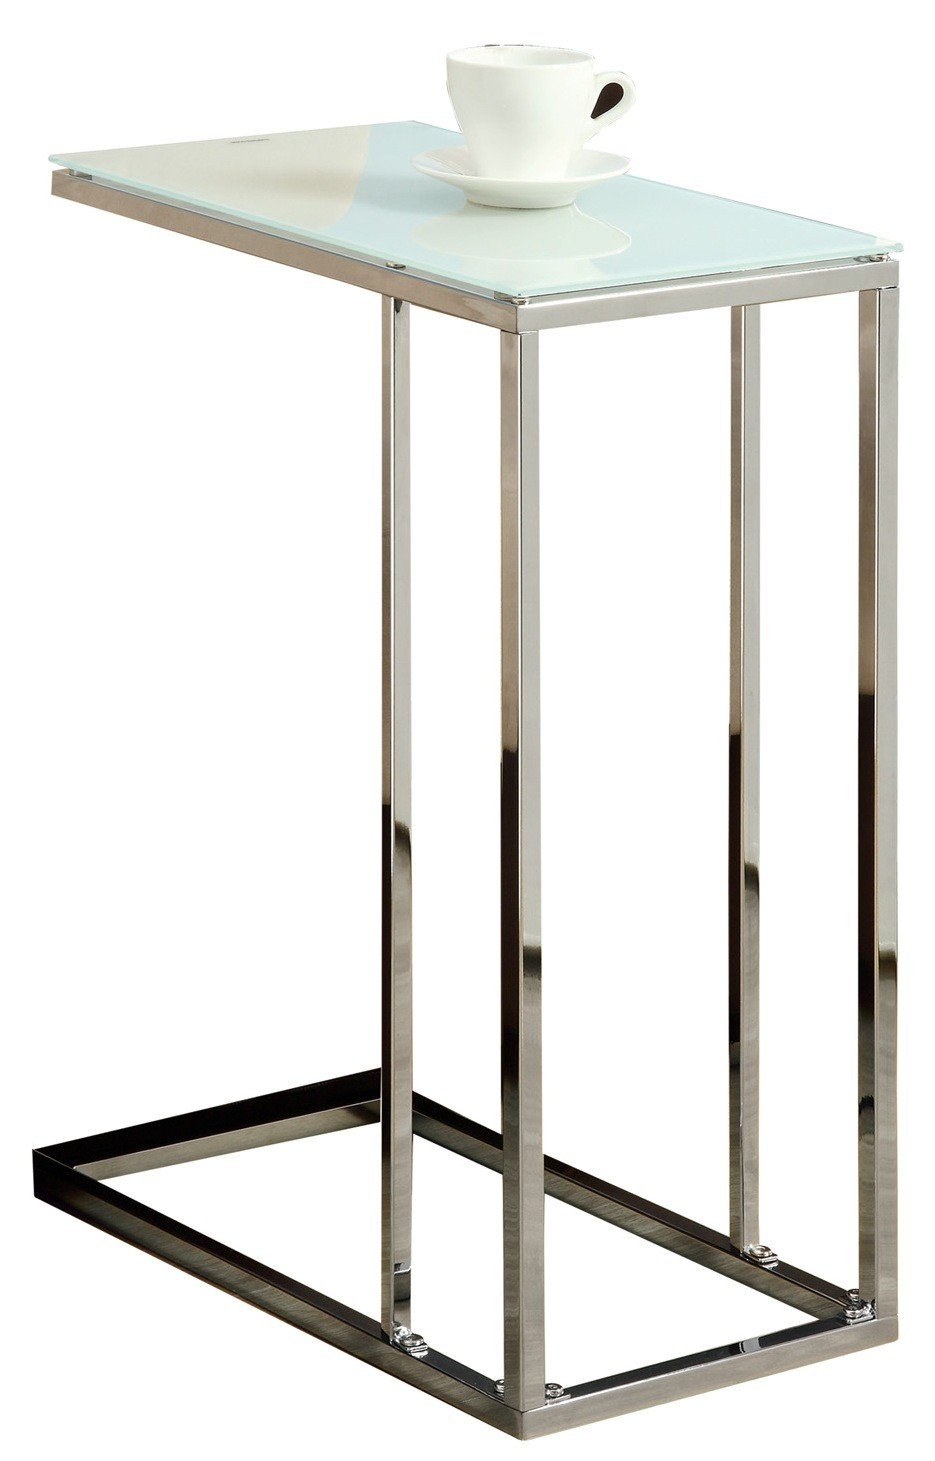 3000 Chrome Metal Accent Table From Monarch I 3000